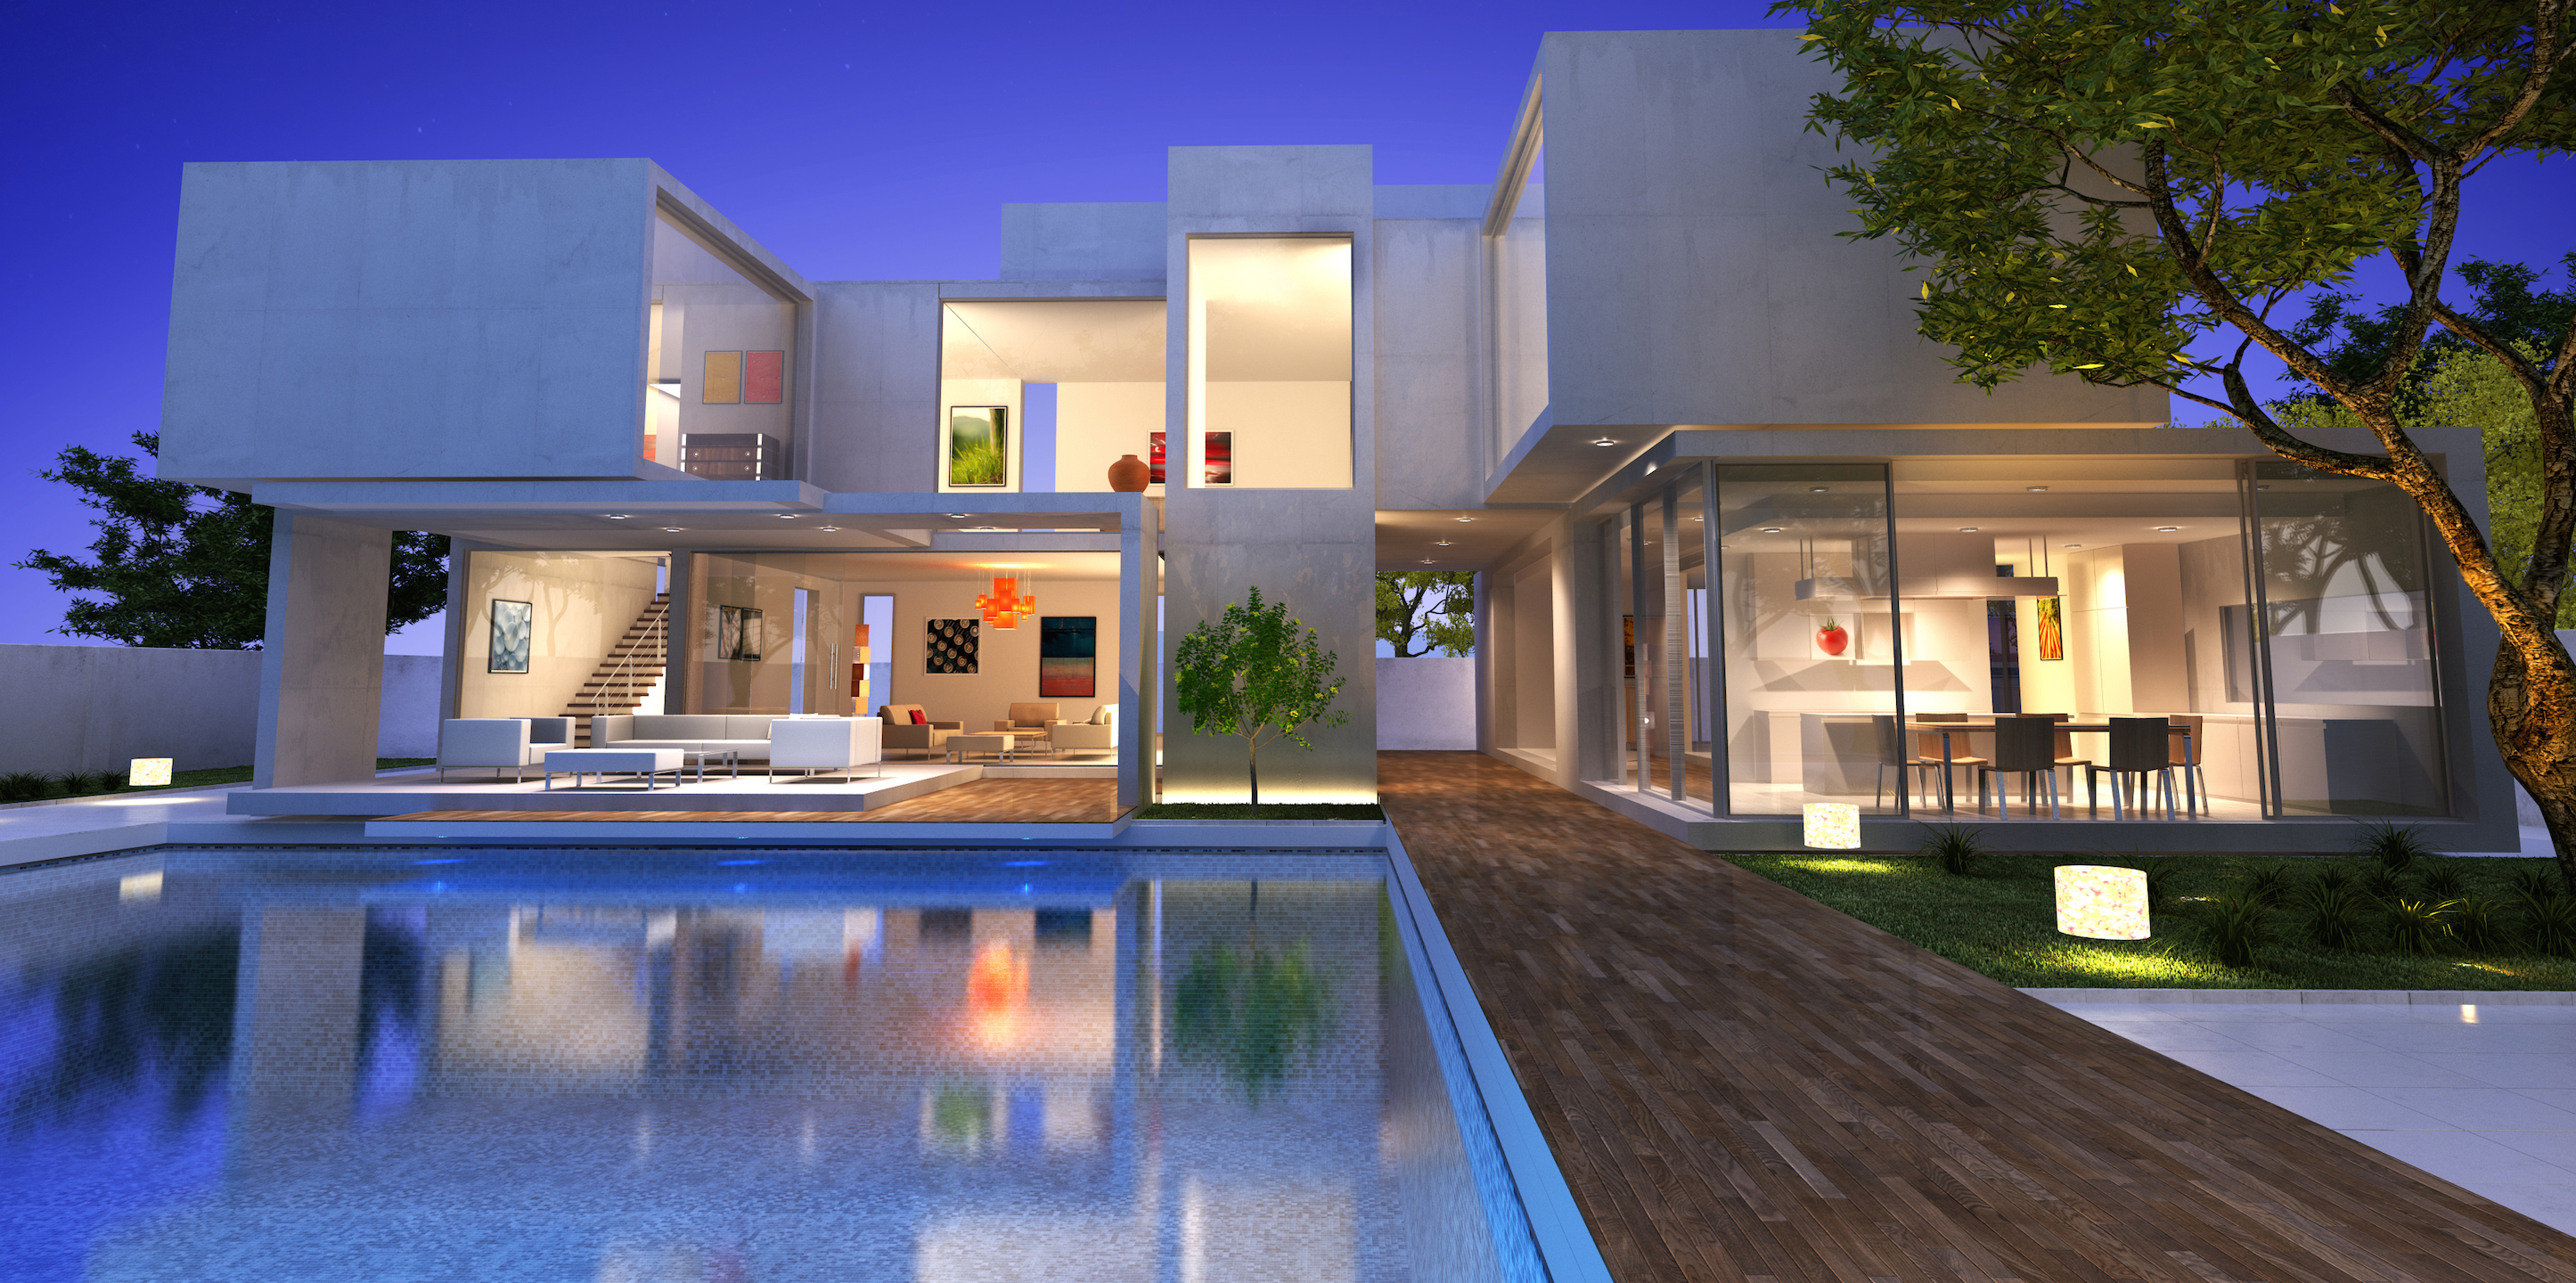 from Corey gay real estate miami